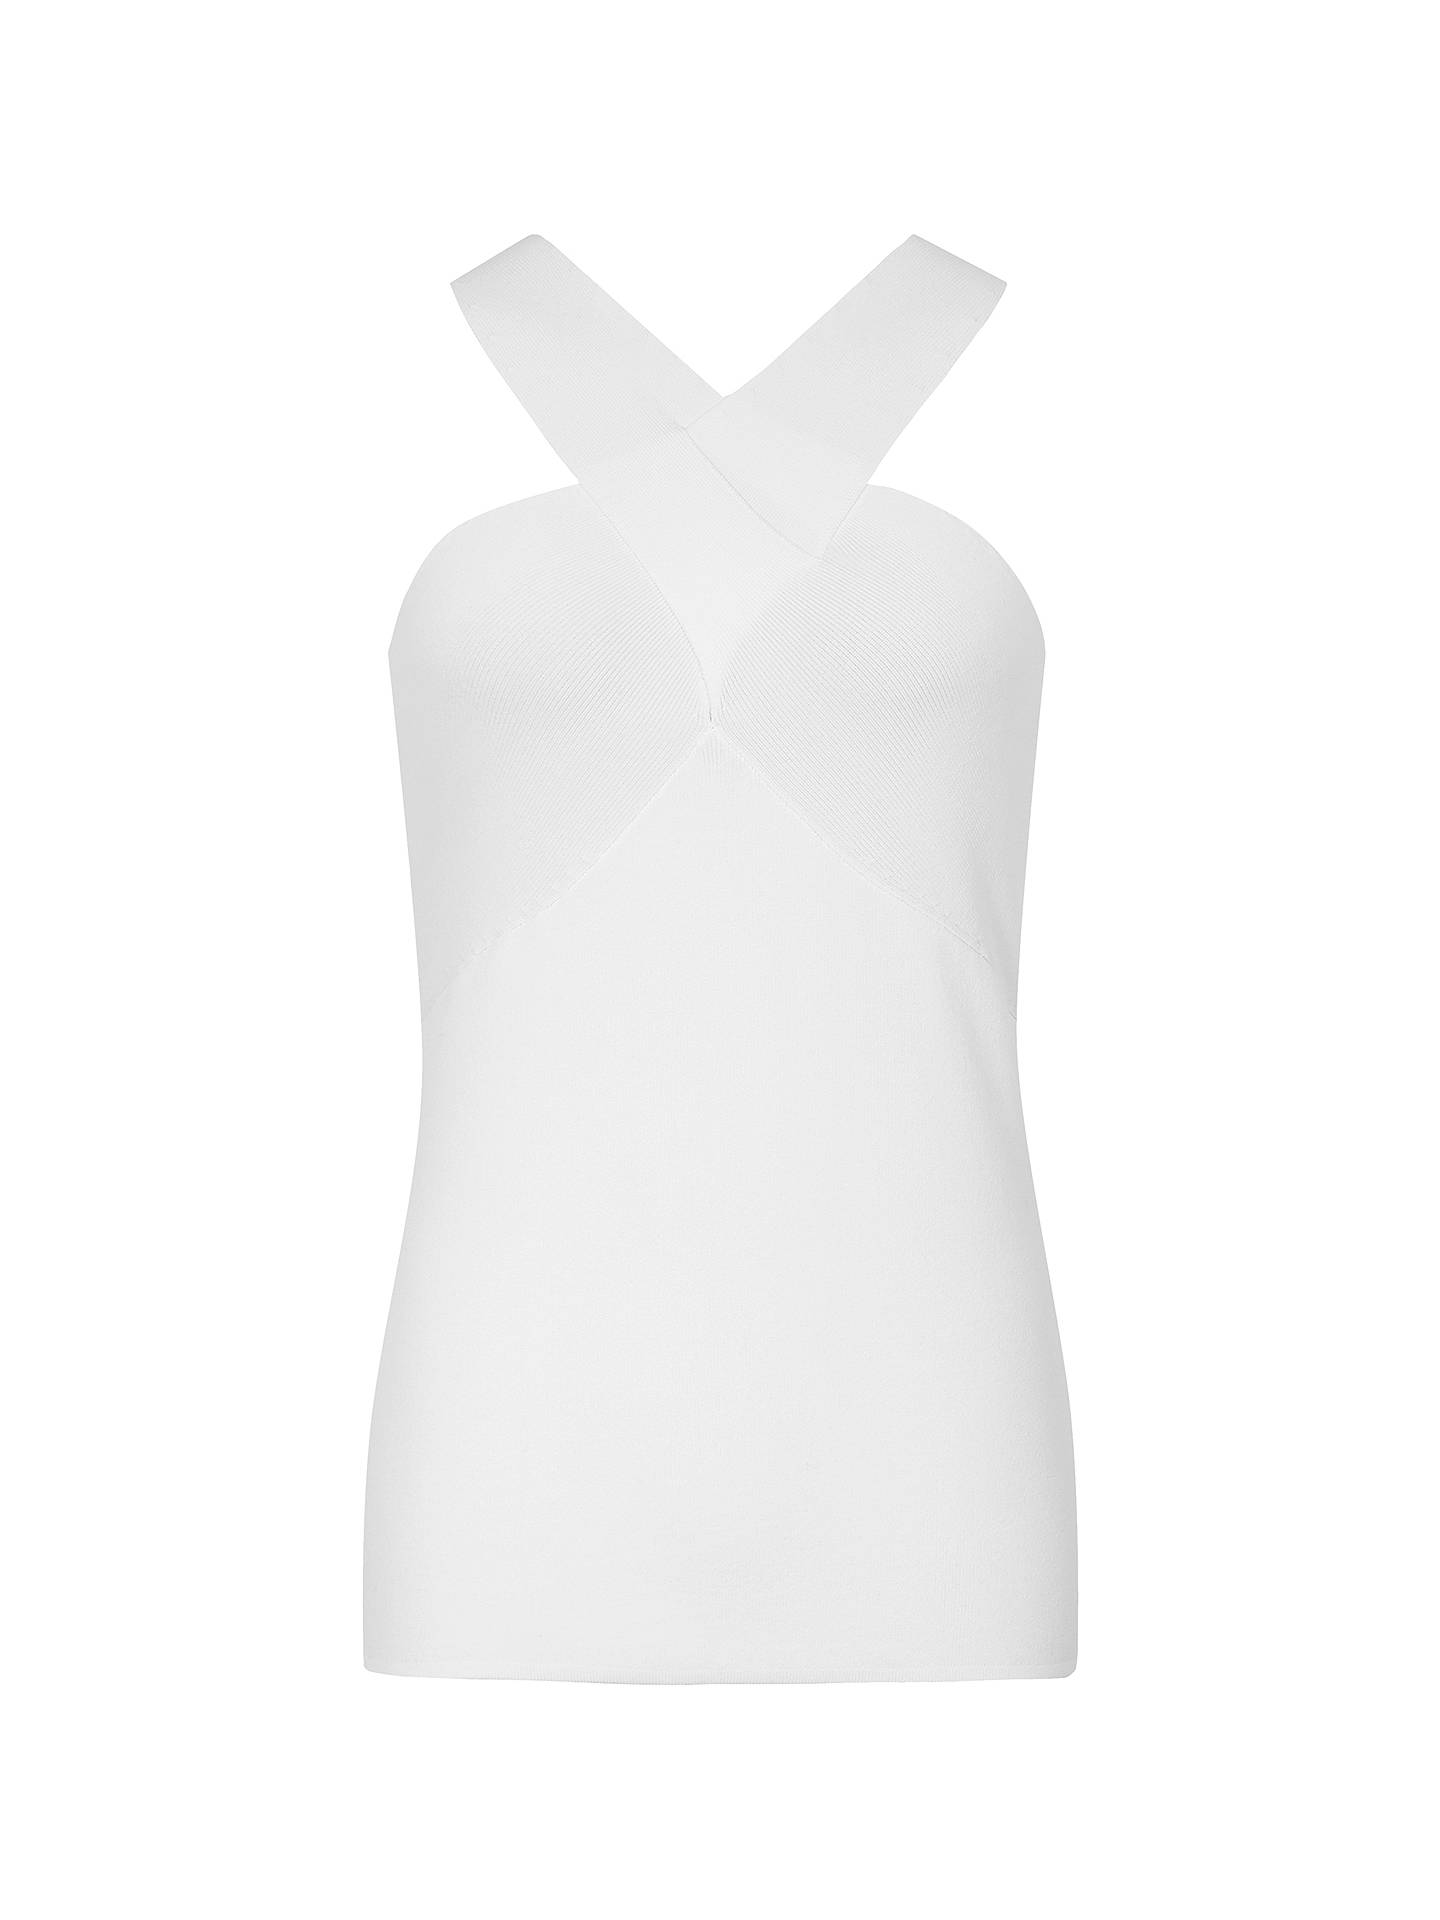 BuyReiss Milano Halterneck Top, White, XS Online at johnlewis.com